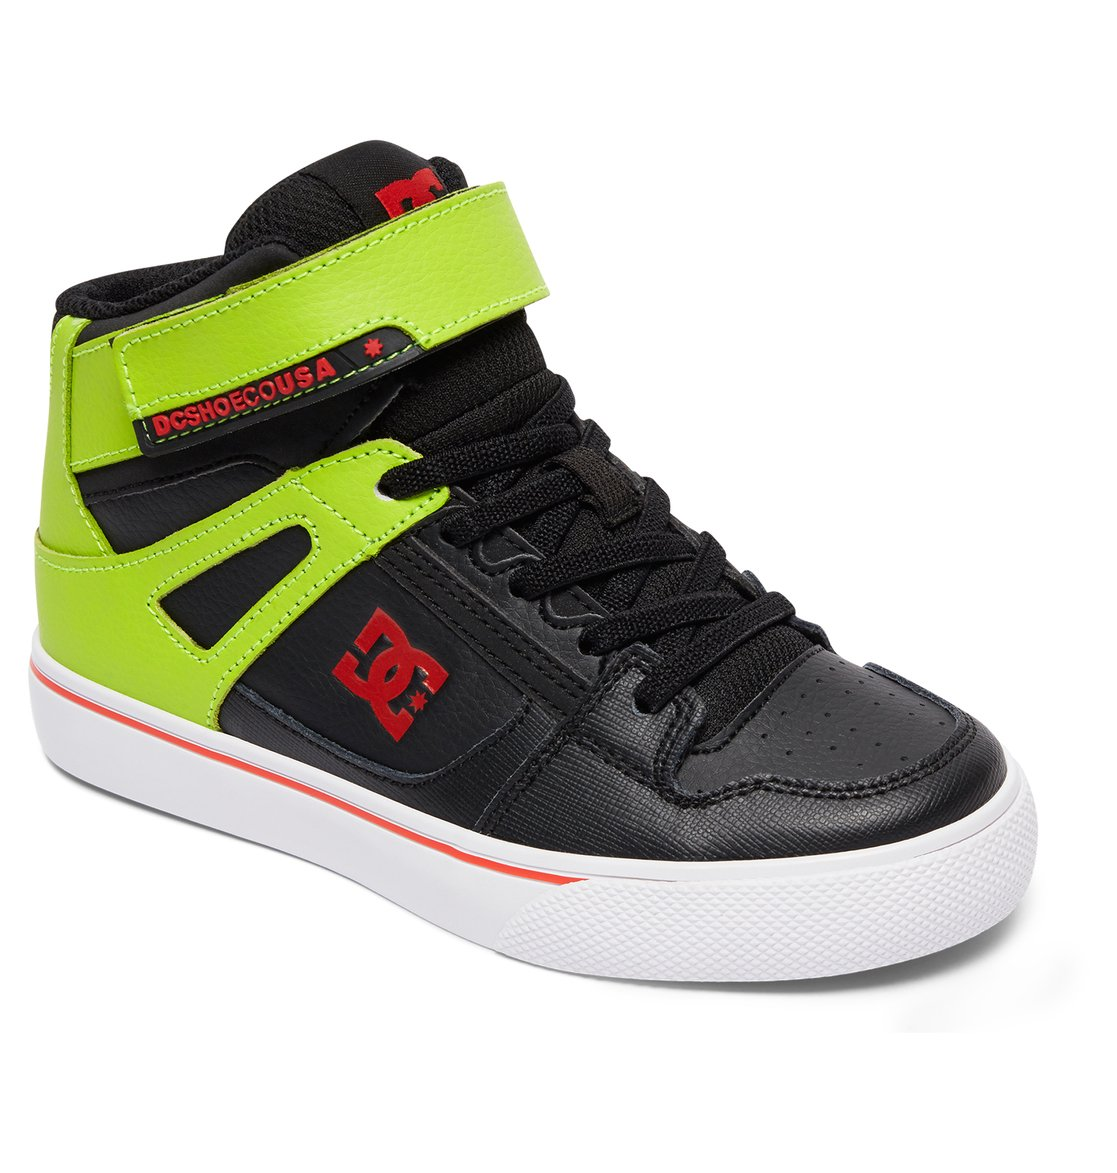 Dc Shoes Spartan Kid